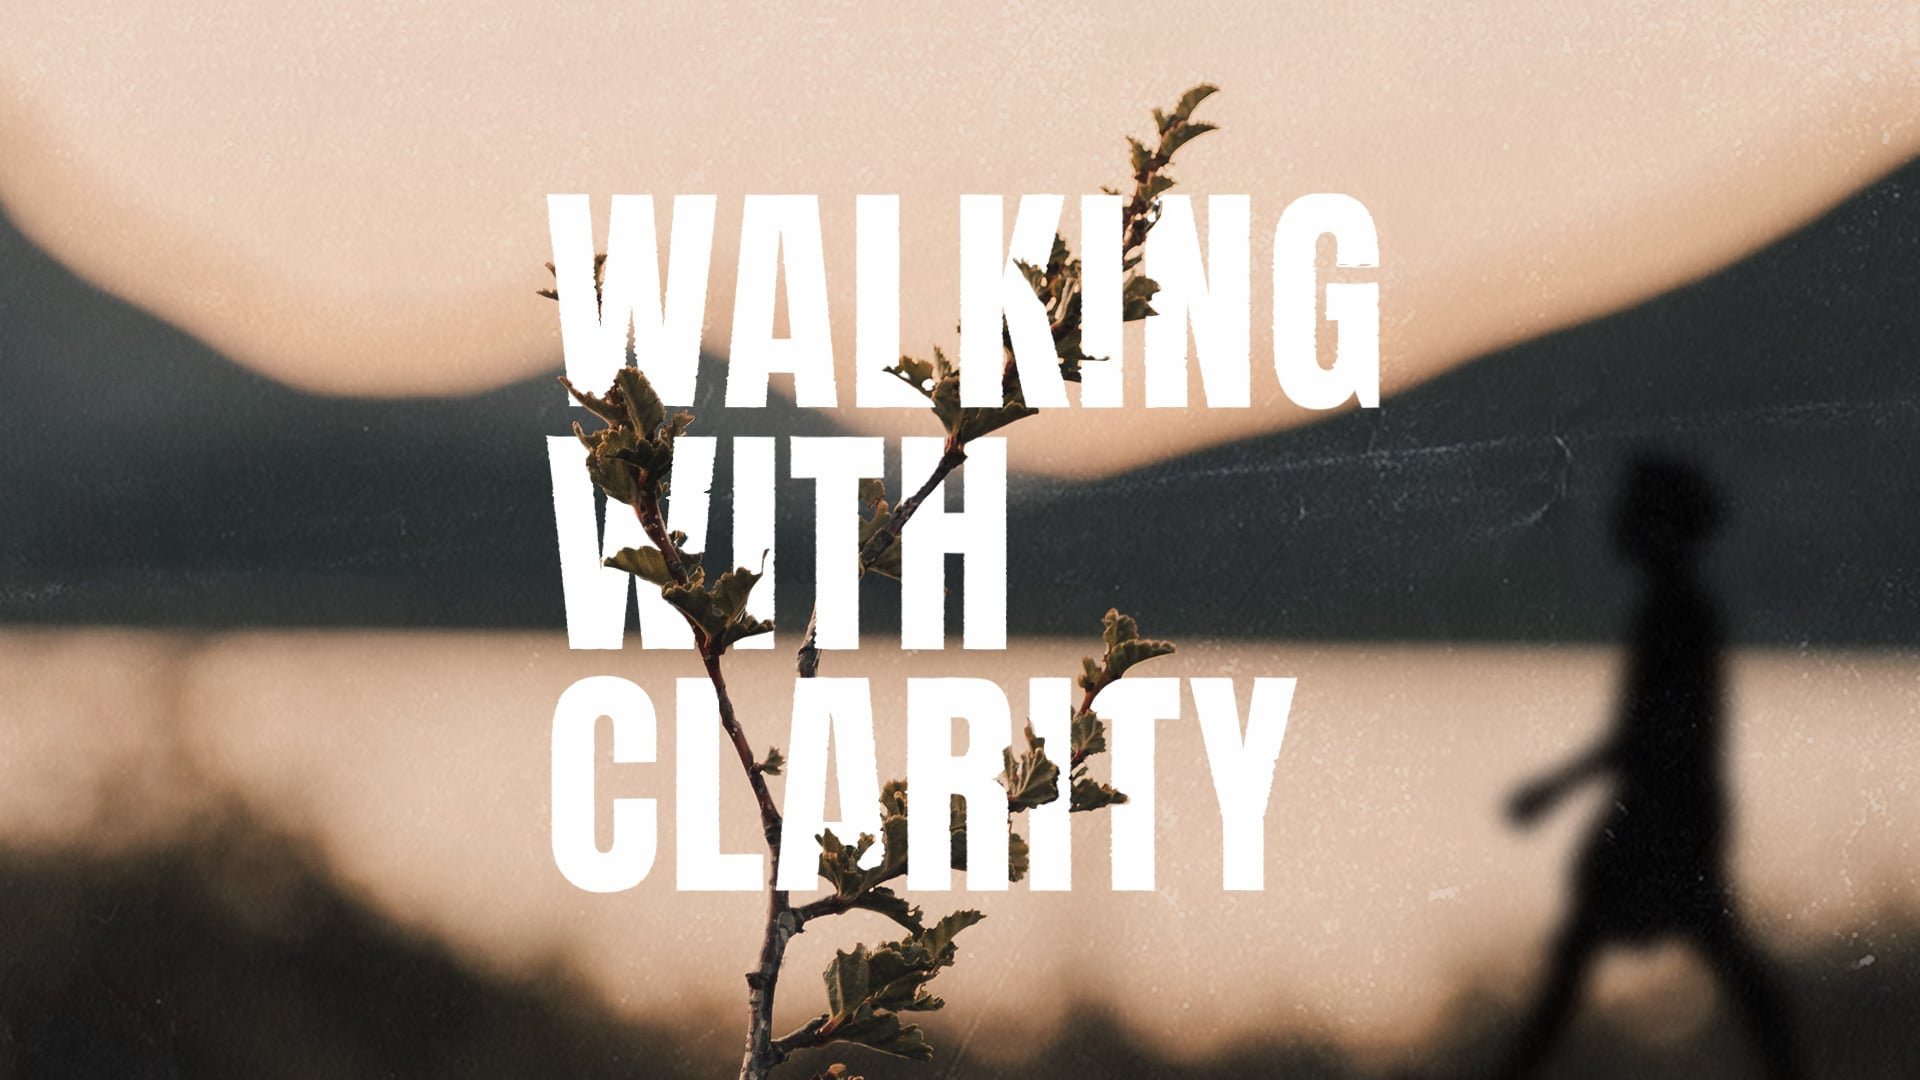 Walking with Clarity Pt. 2   8-8-21